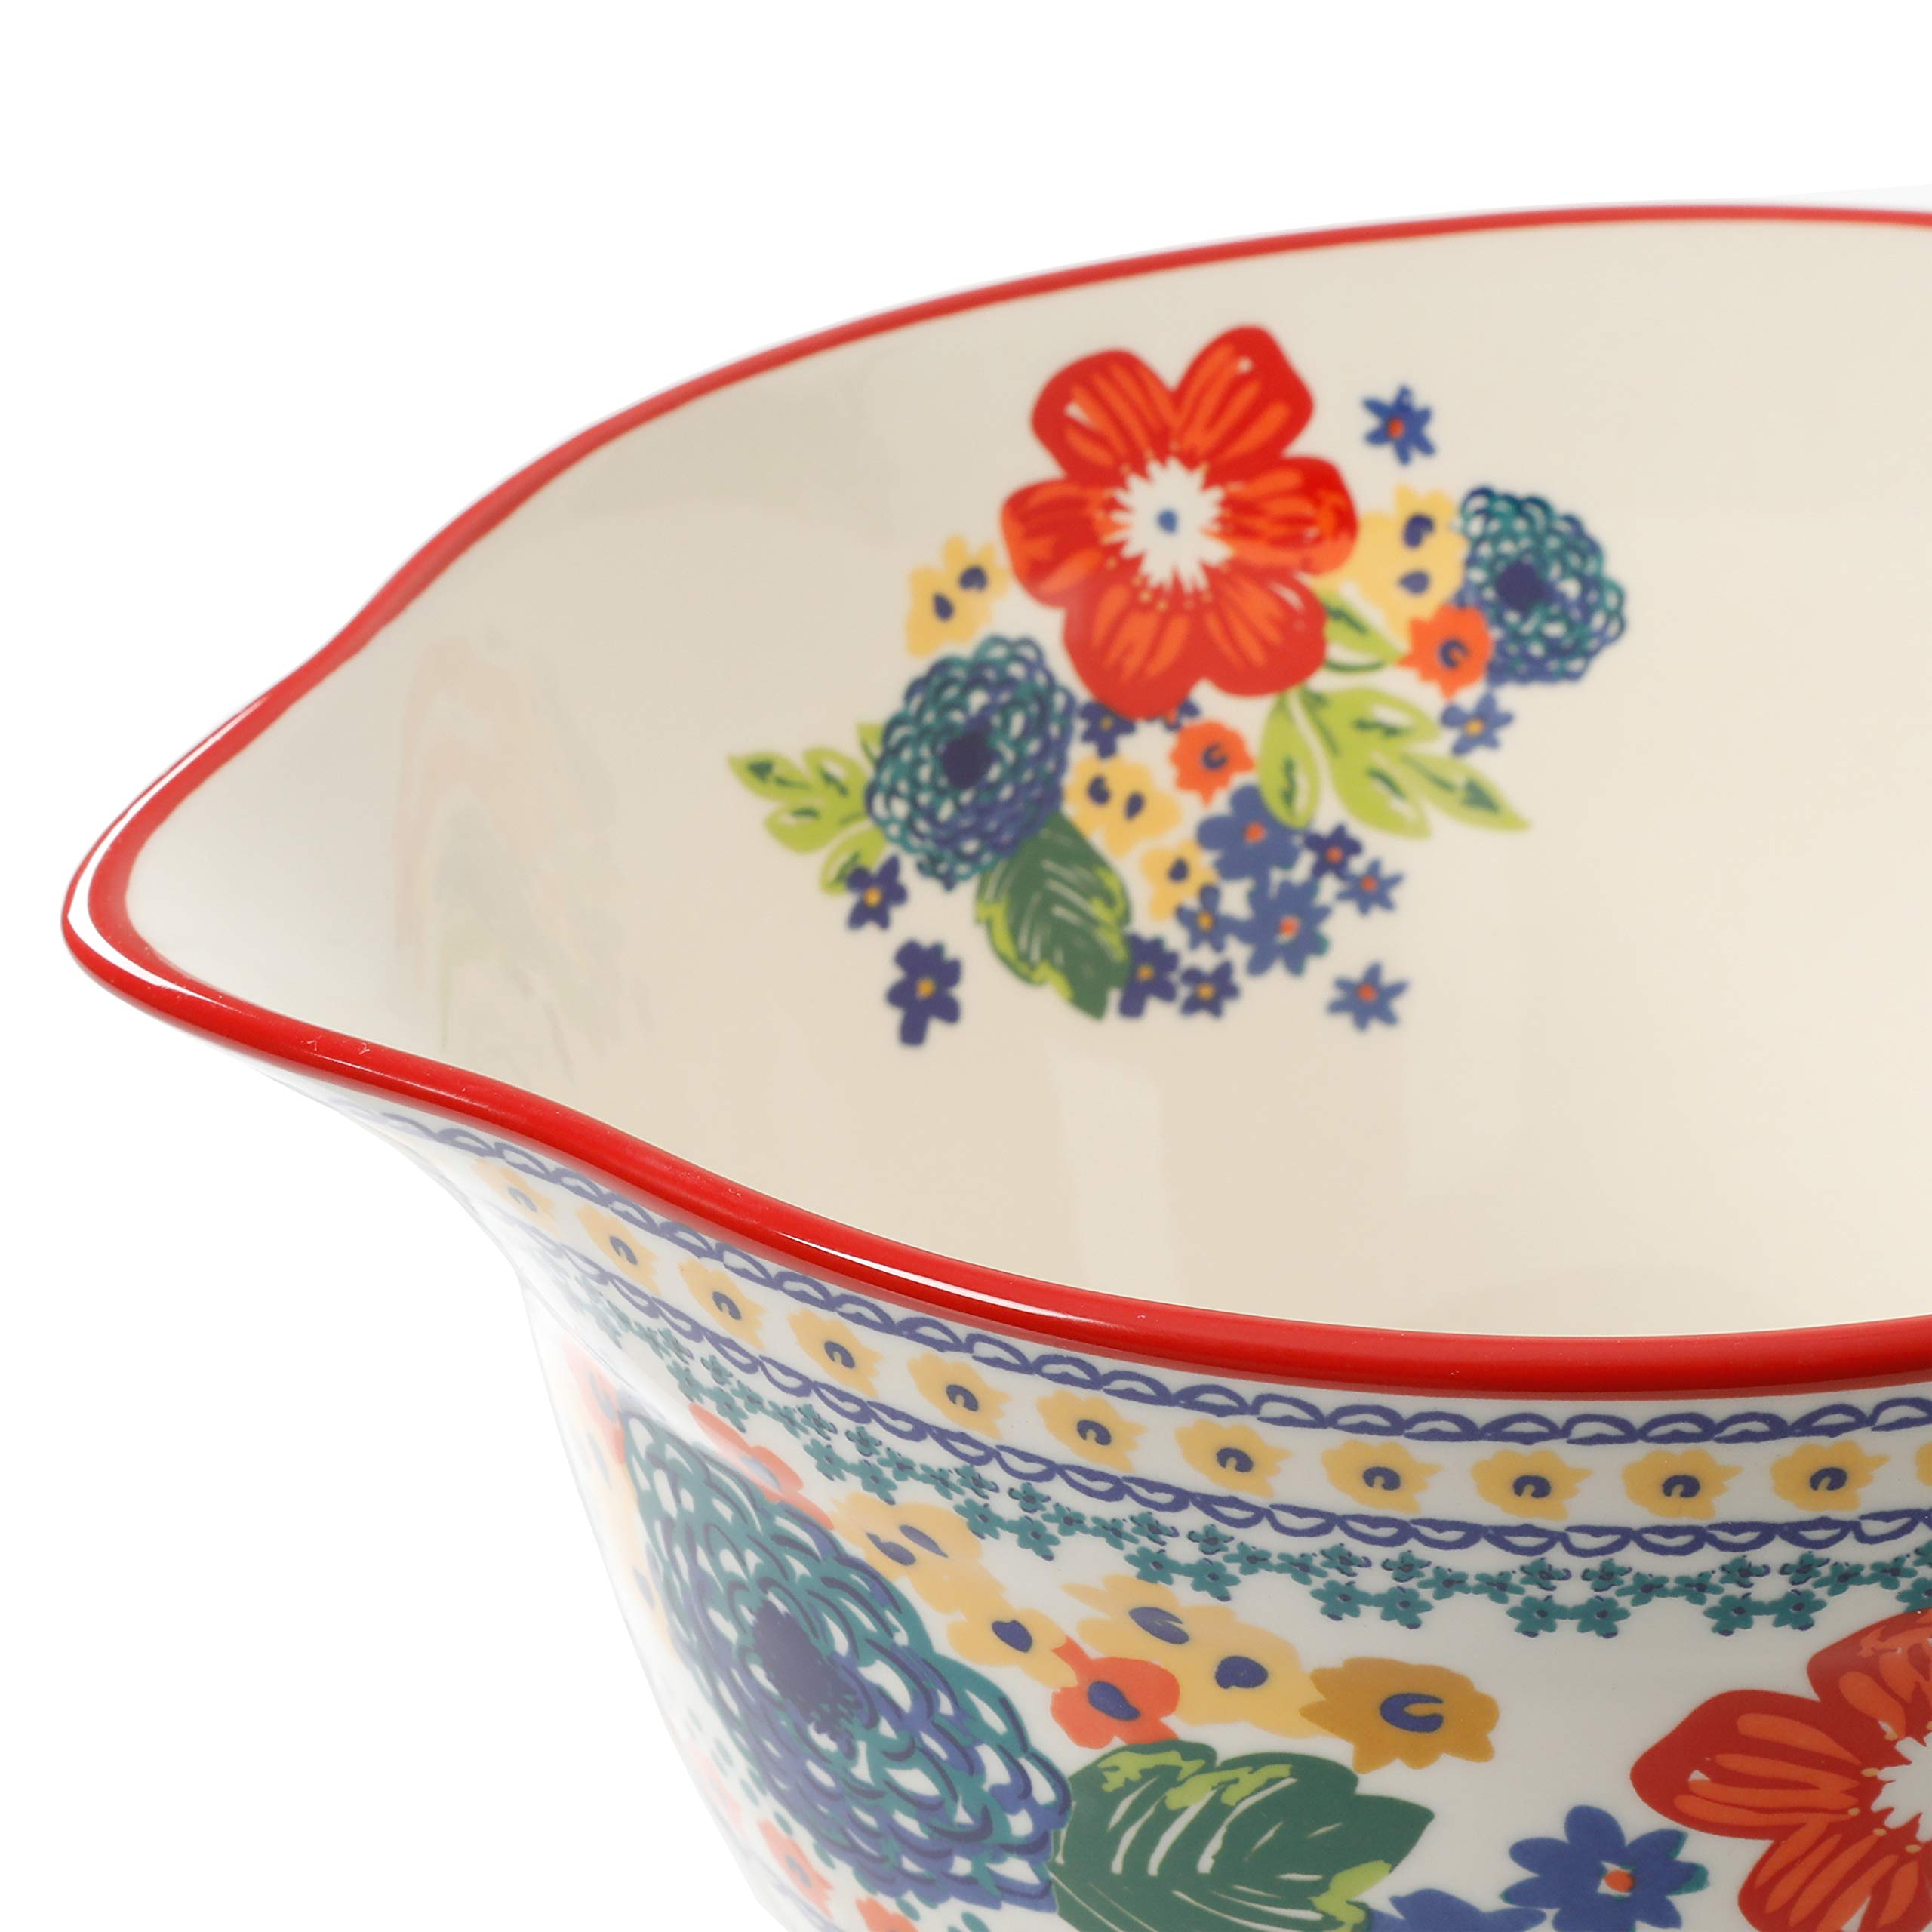 The Pioneer Woman 3.3 Quart Dazzling Dahlias Batter Bowl, 1-Piece bundle with The Pioneer Woman 2-Piece Rectangular Ruffle Top Ceramic Bakeware Set'' by The Pioneer Woman (Image #4)